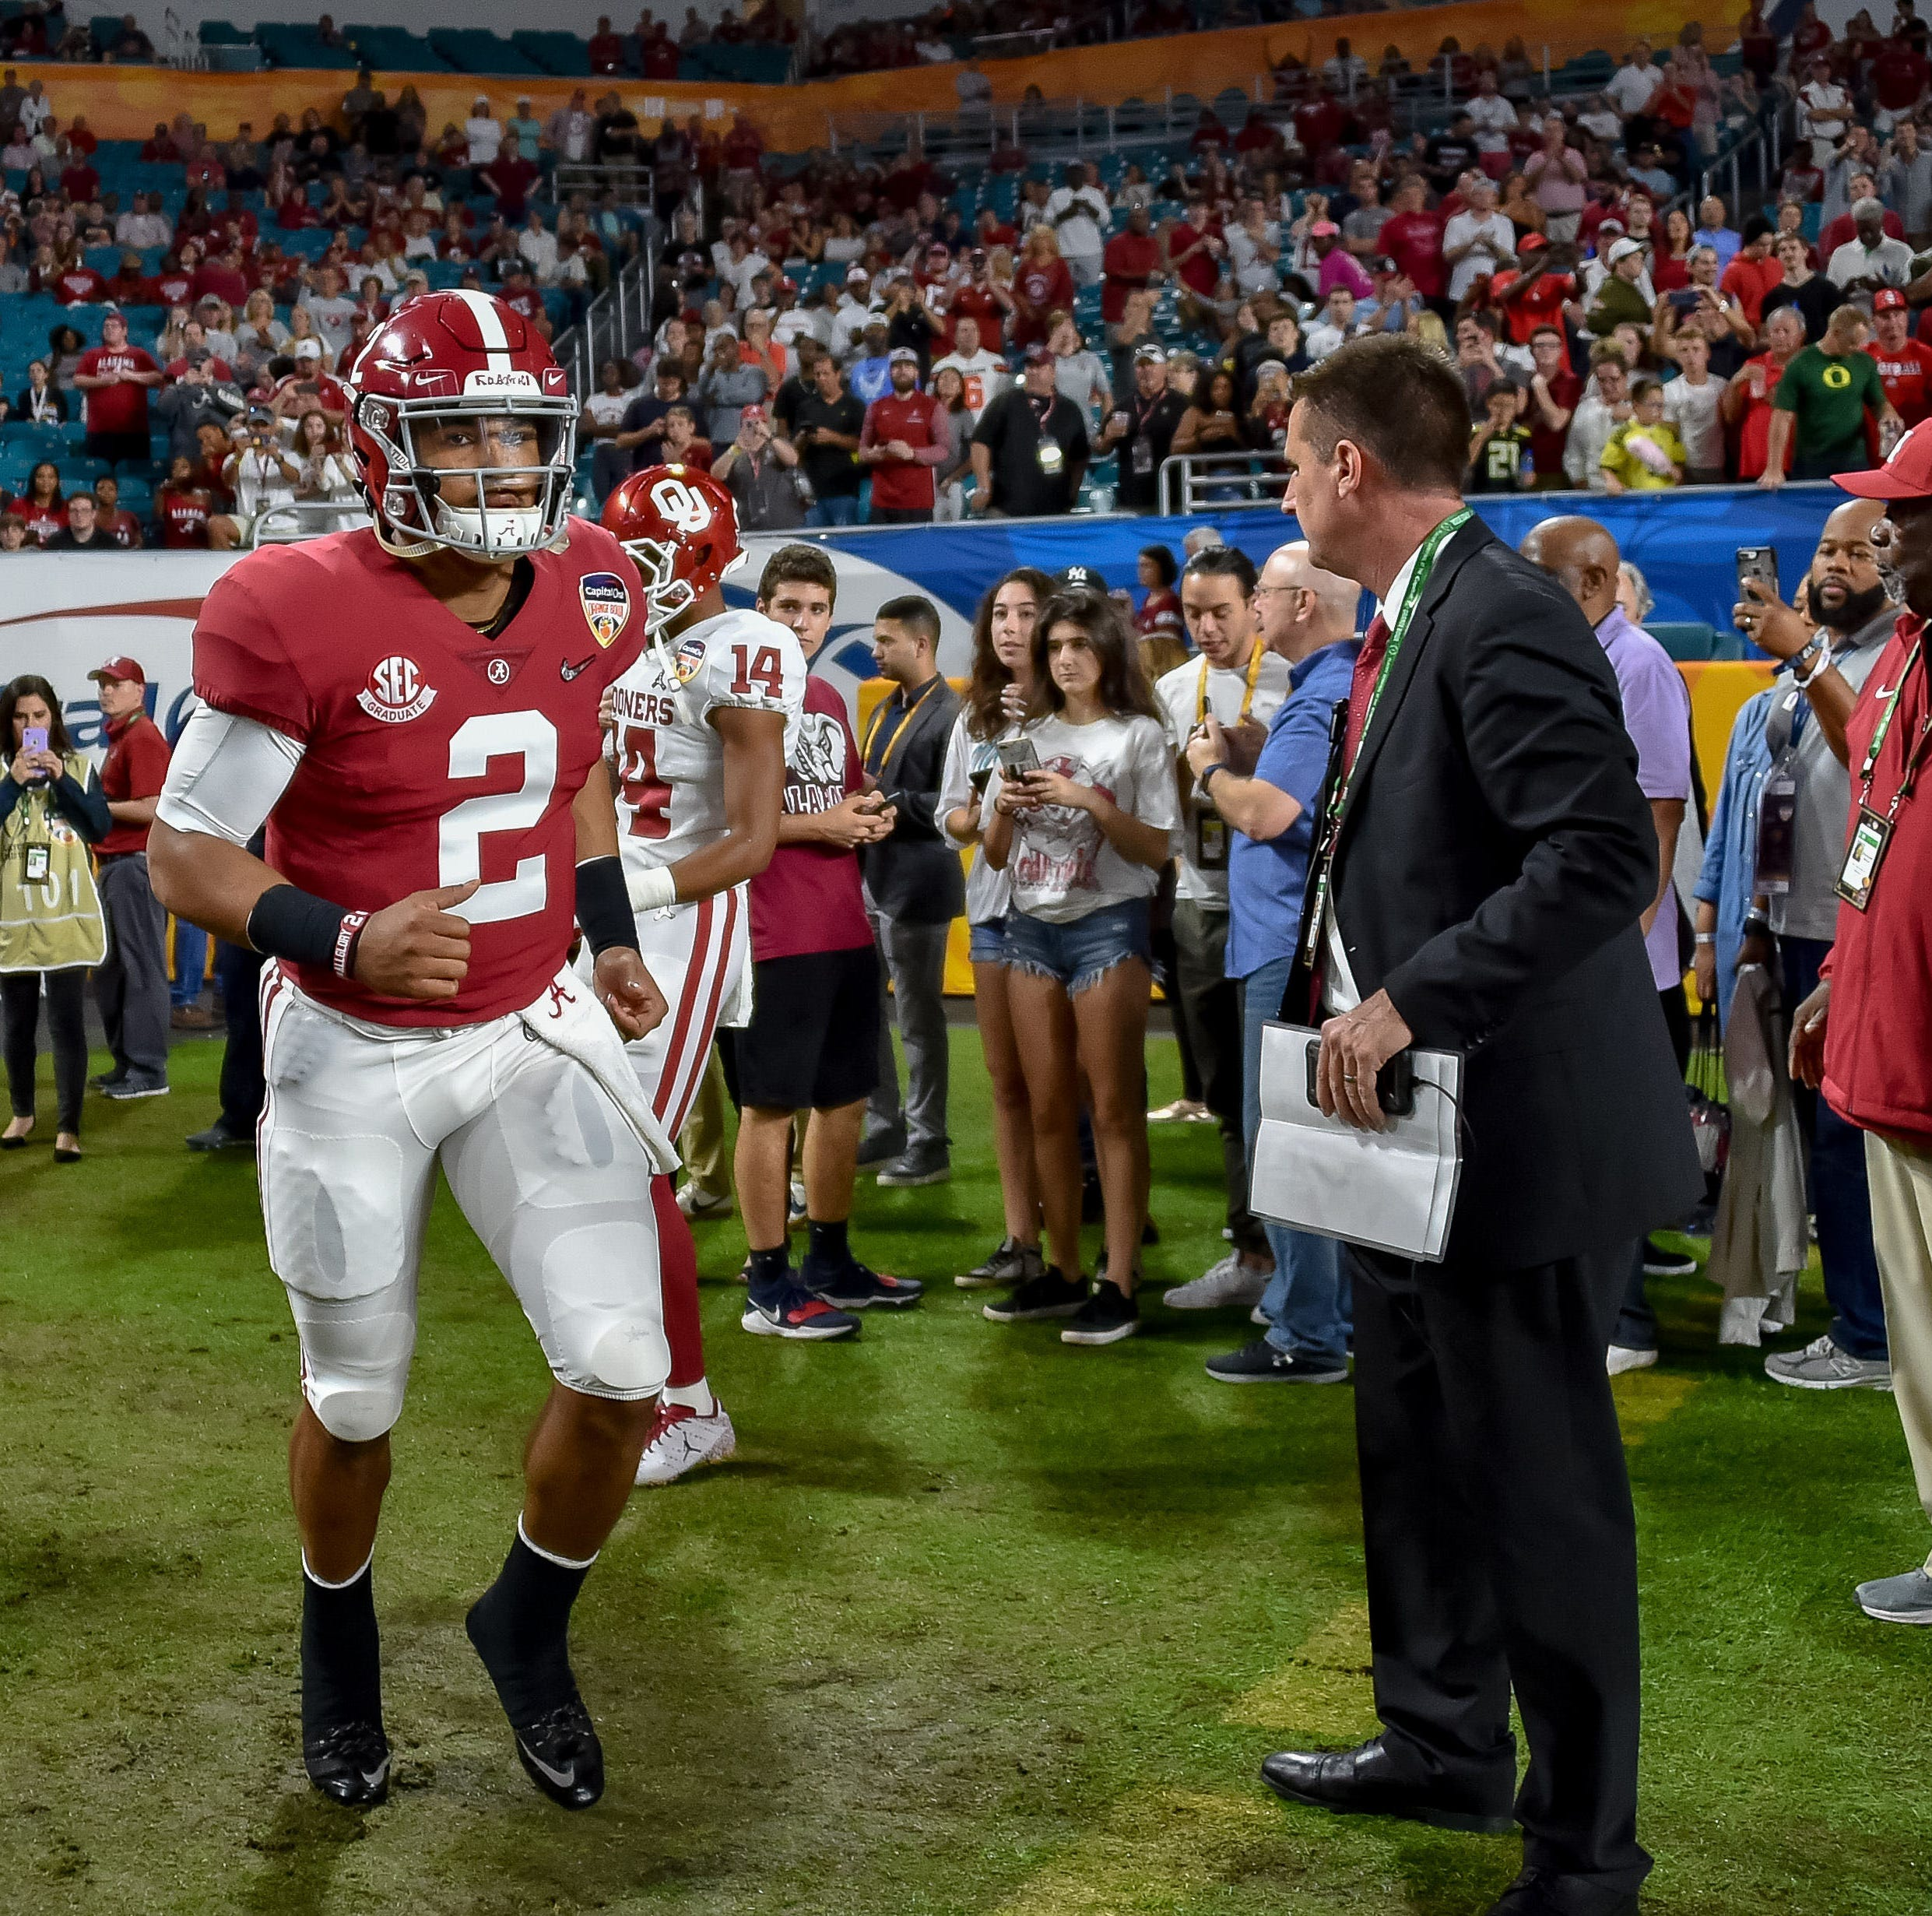 Jalen Hurts is taking his talents to Norman, Oklahoma. Is a Heisman Trophy in his future?